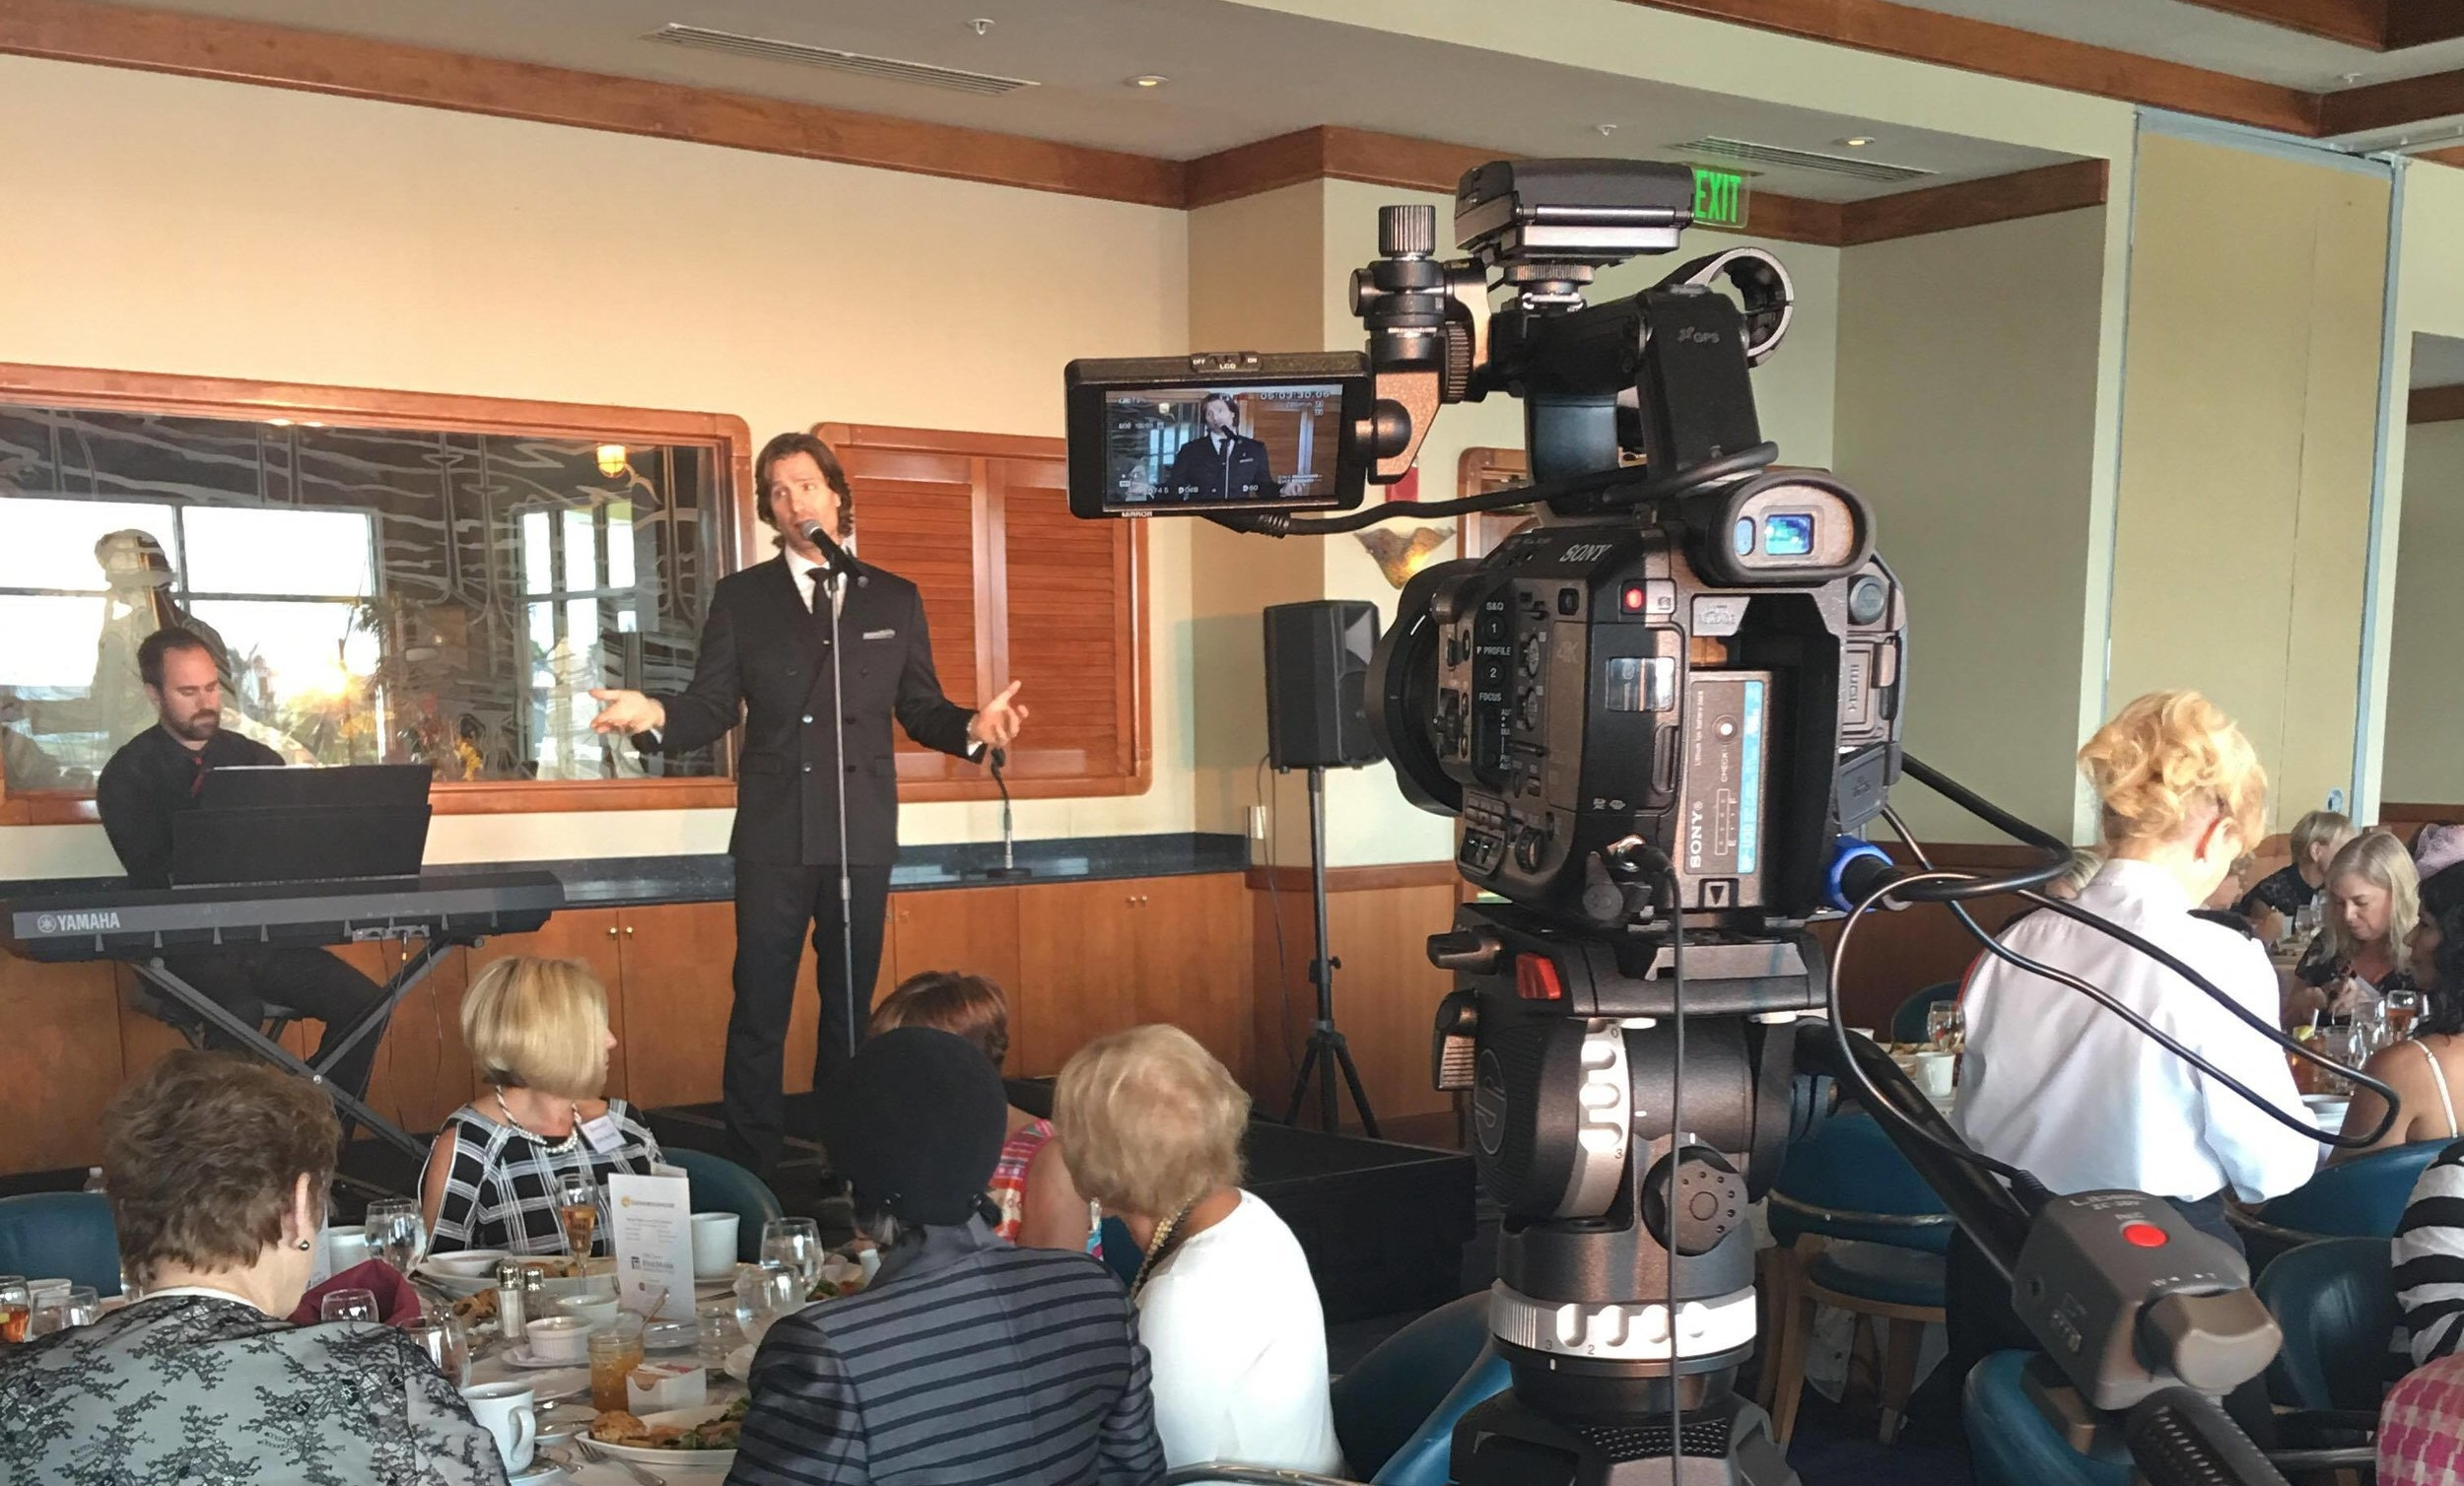 John Cudia singing on stage at the Naples Sailing & Yacht Club